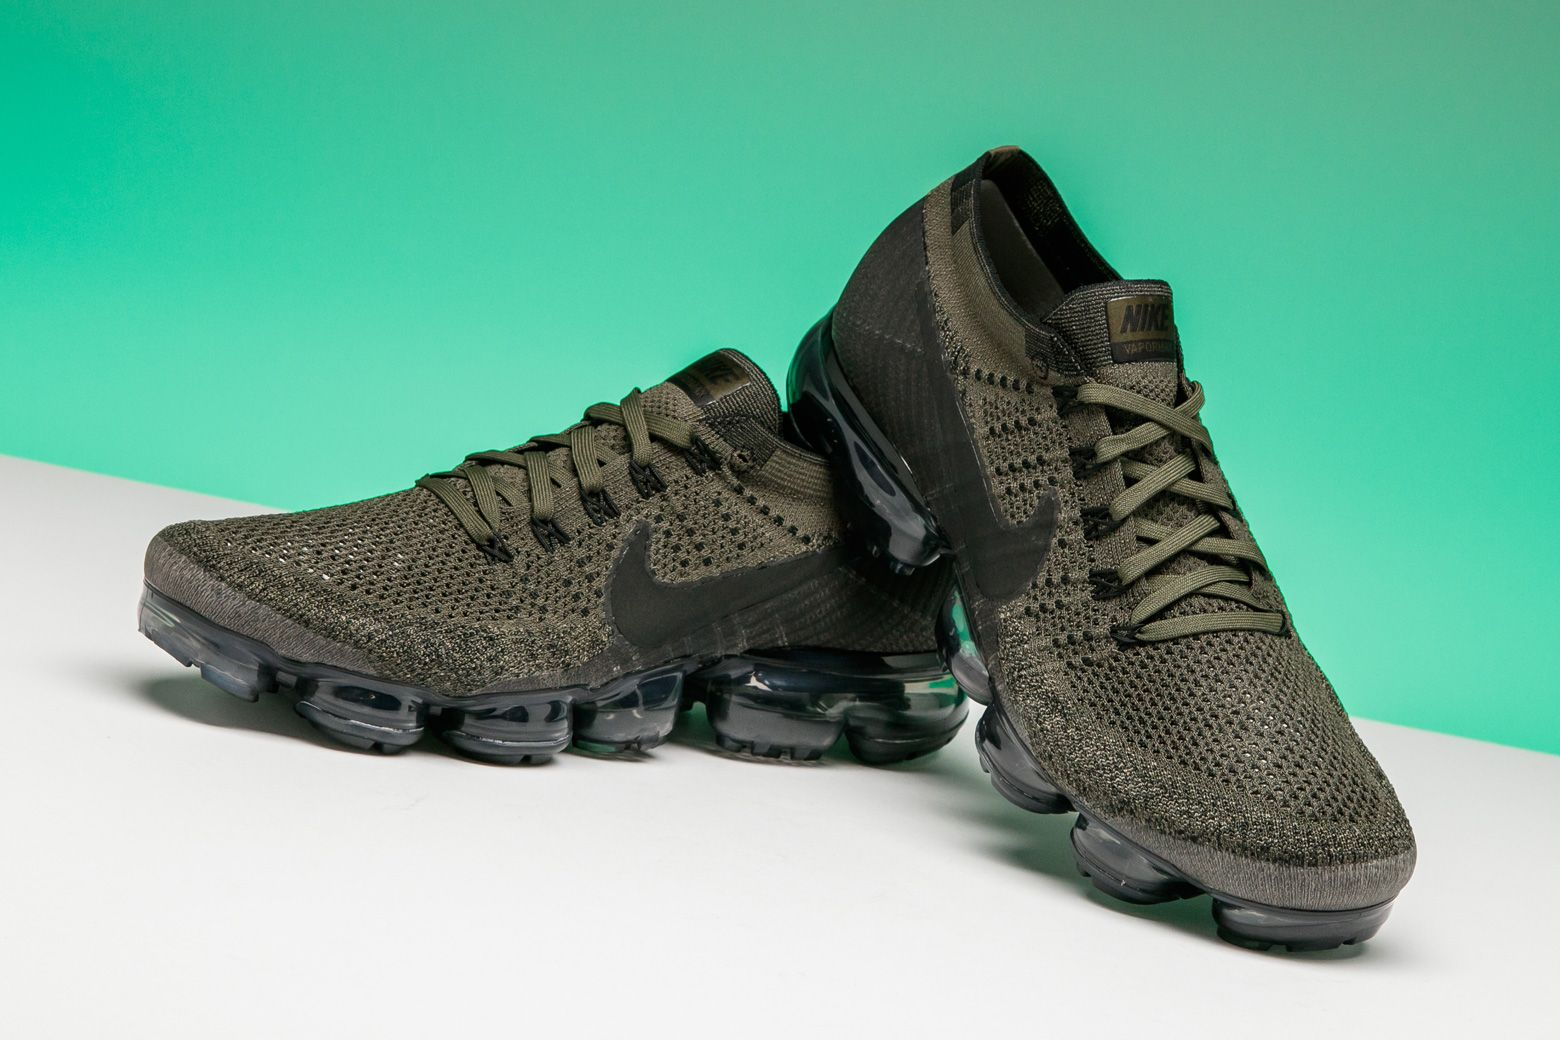 04f5ad9f8b9 The Nike Air VaporMax shines in this army fatigue-like Cargo Khaki colorway.